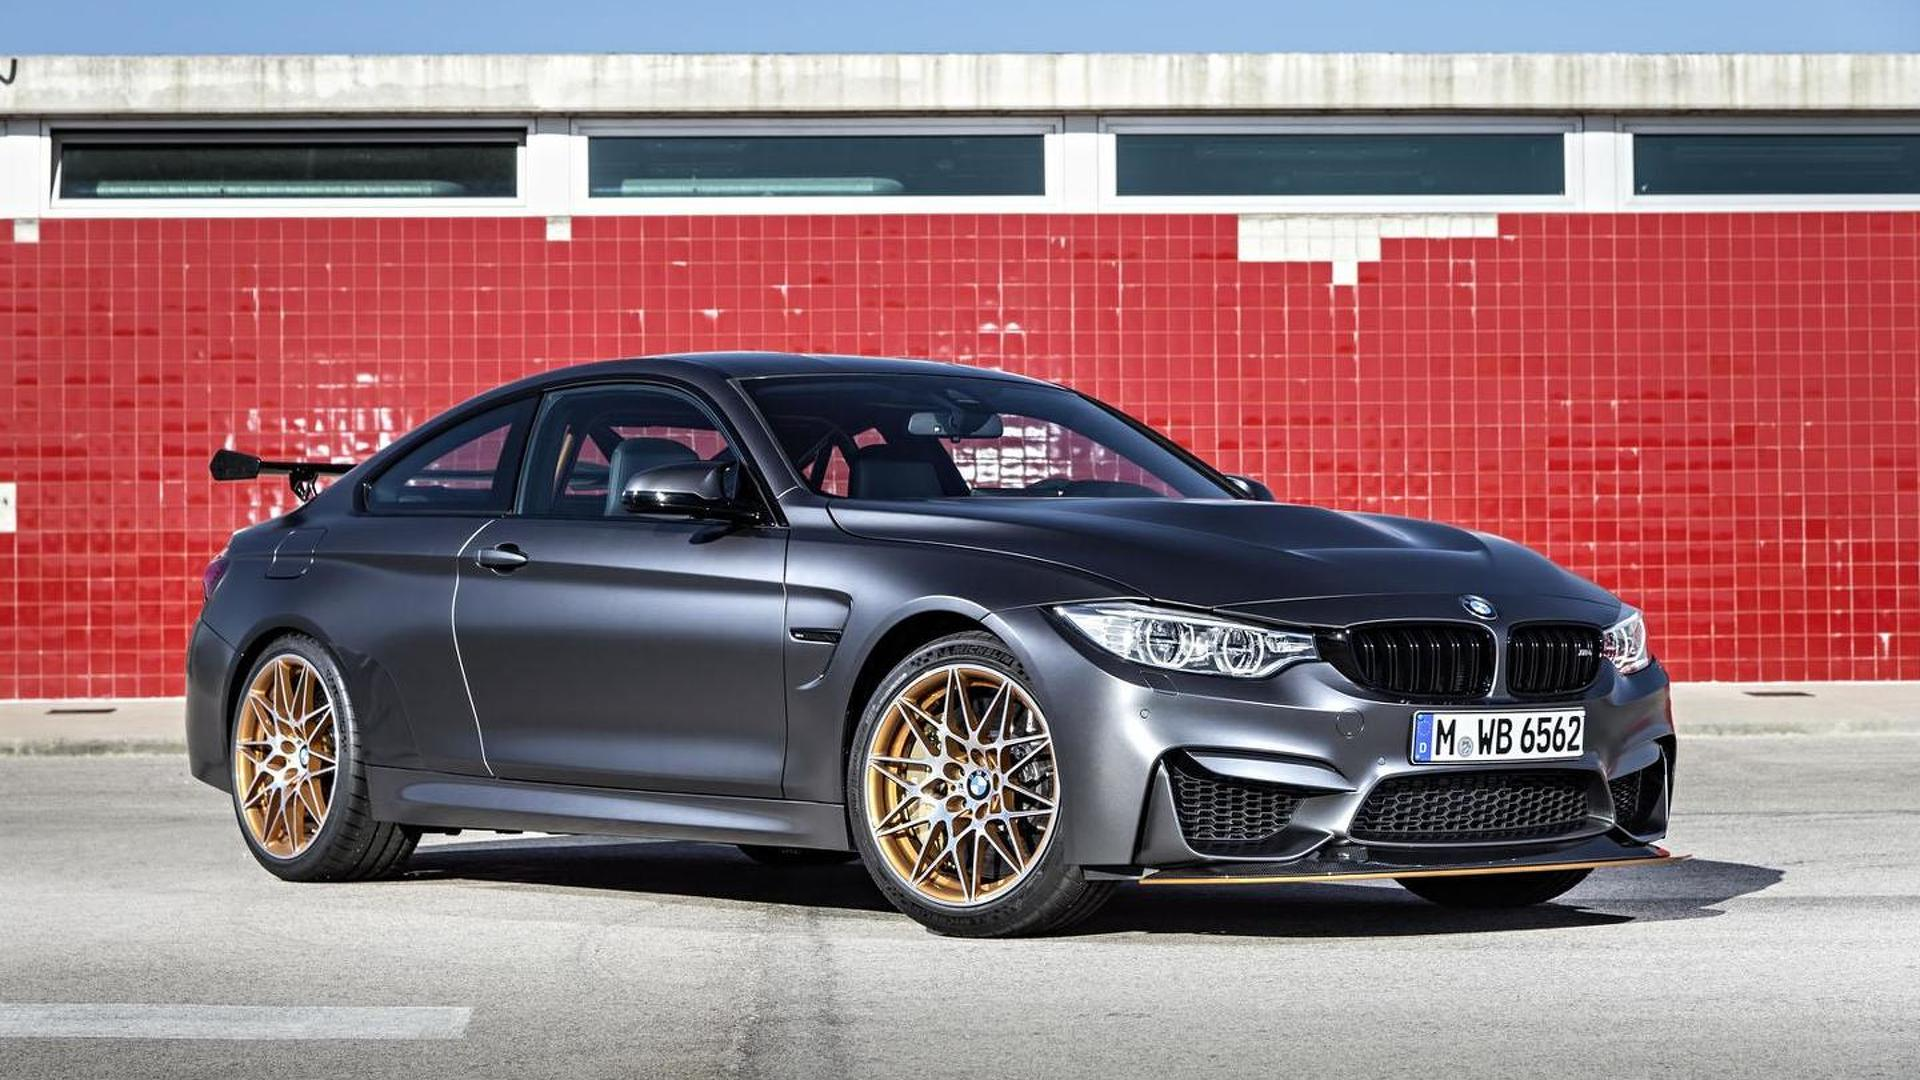 BMW to assemble only five M4 GTS units per day